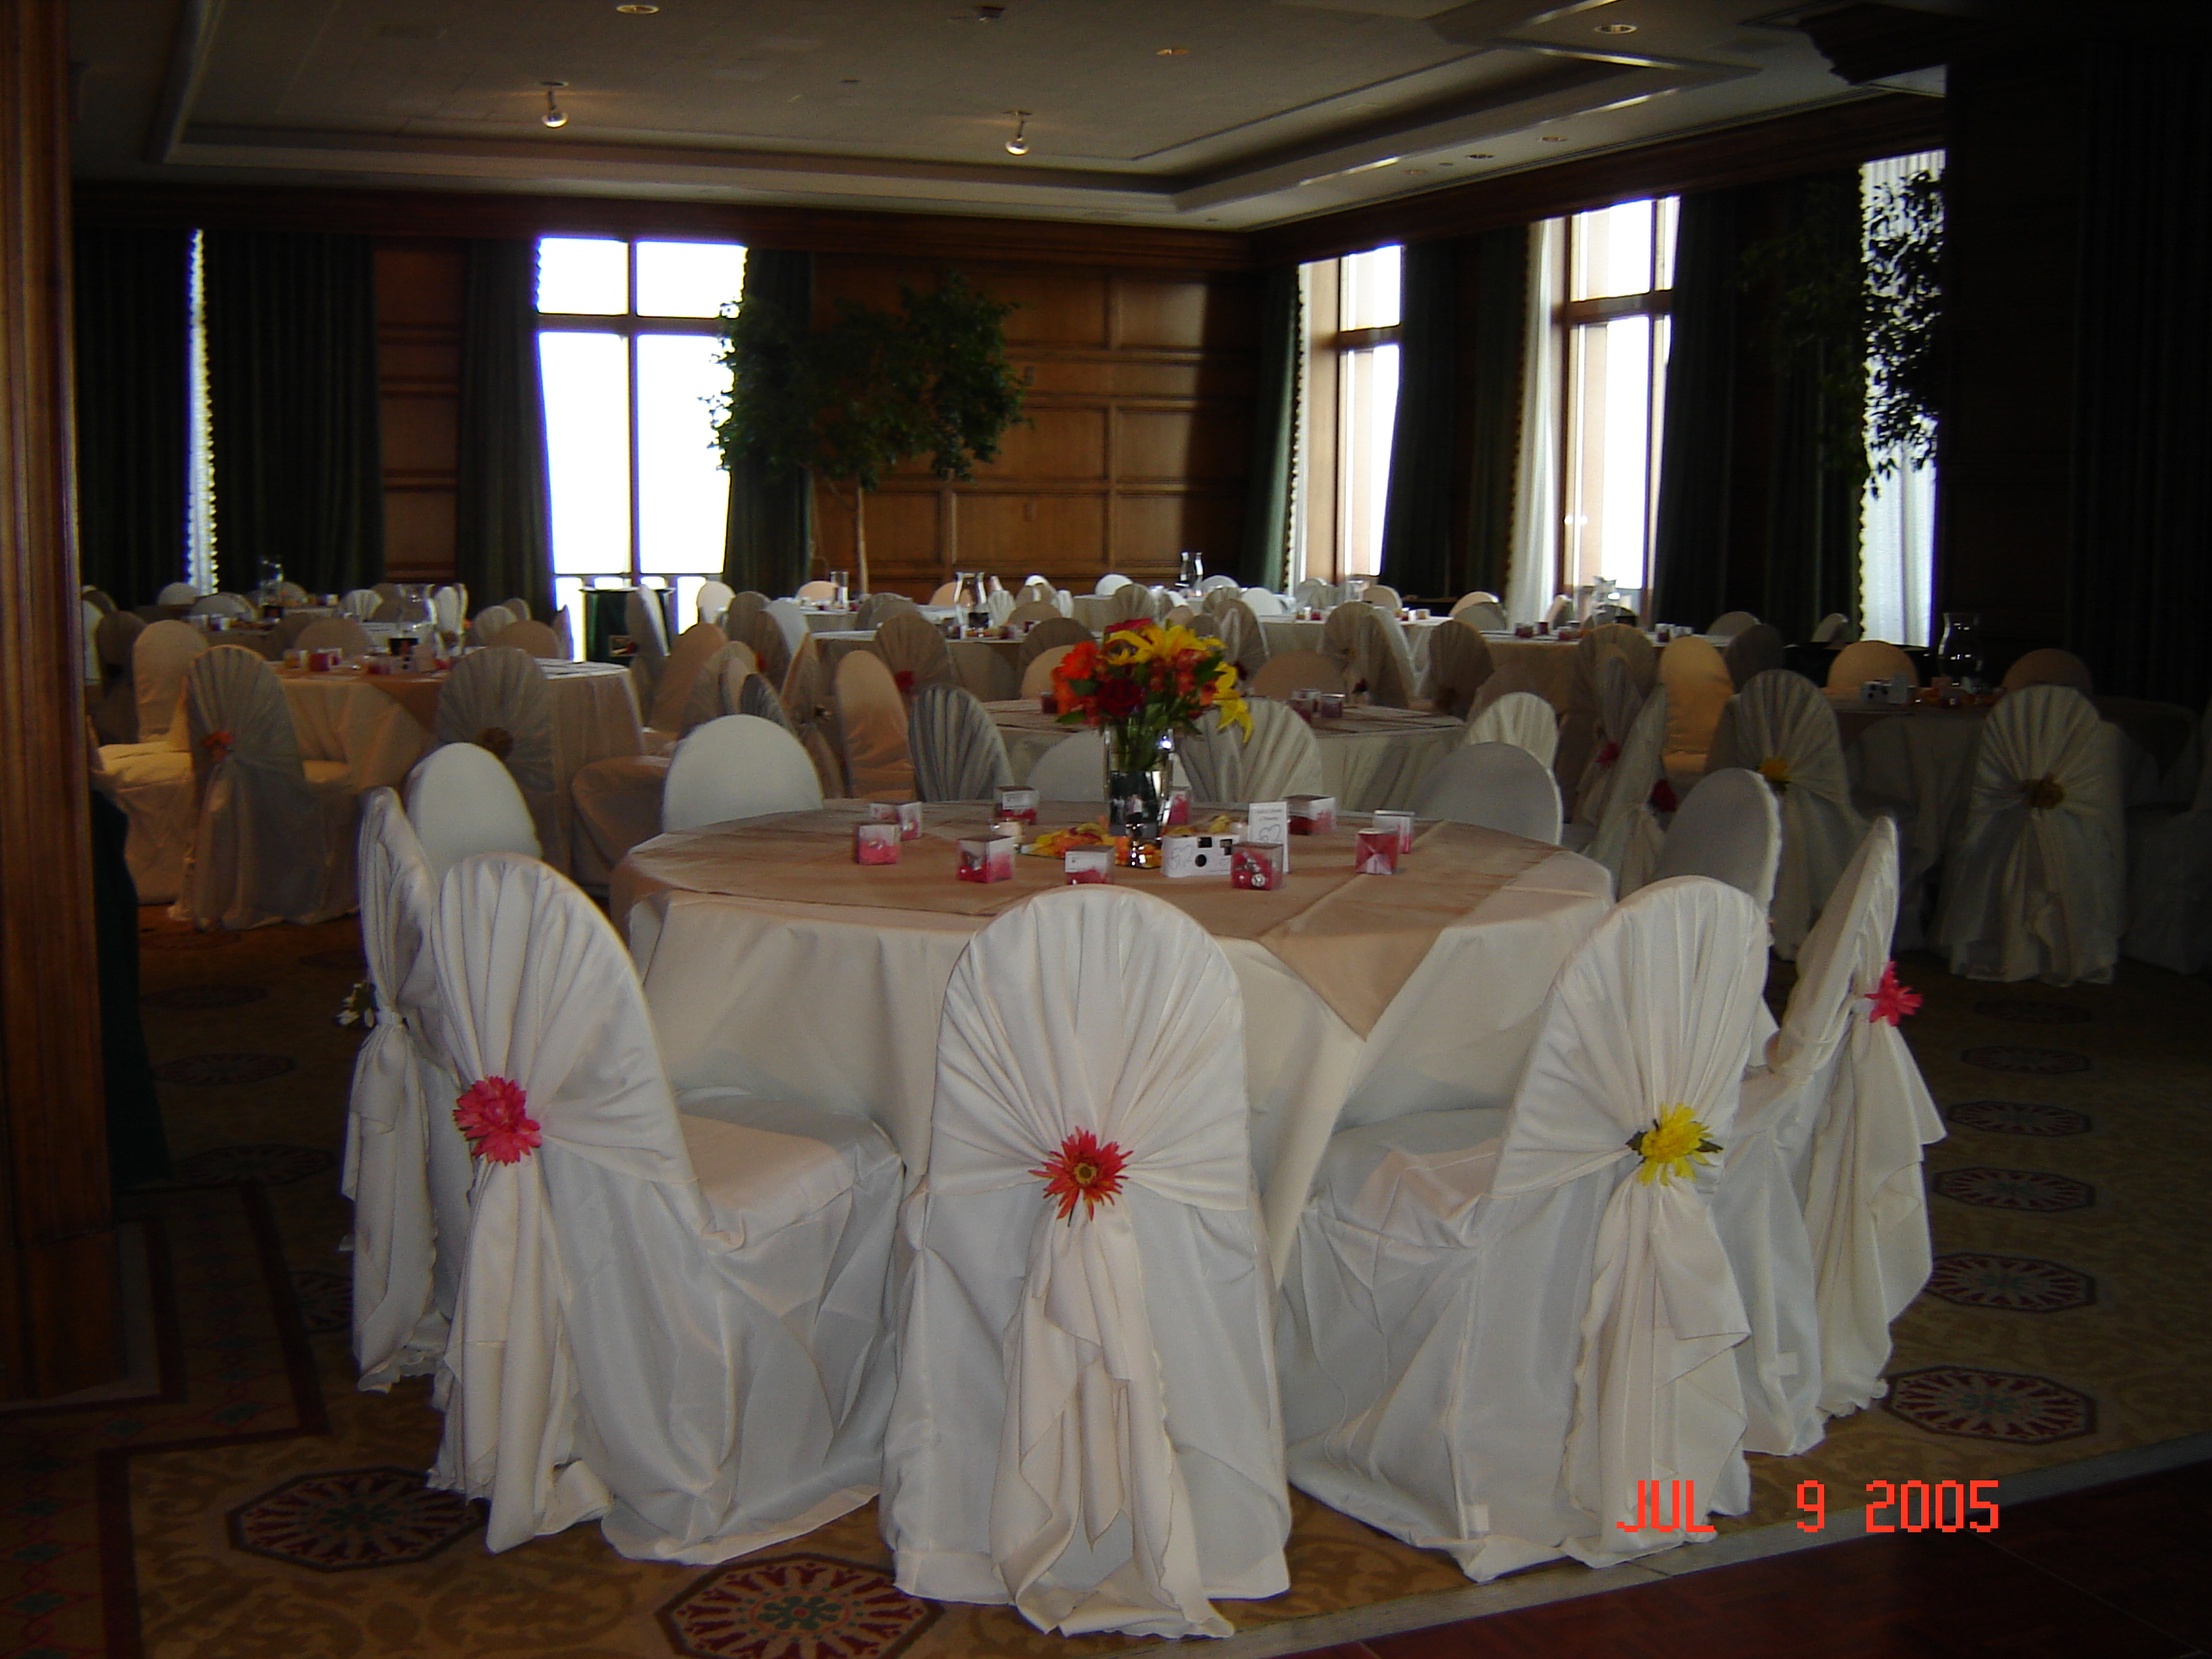 Simply Elegant Weddings Chair Cover Rentals wedding rentals